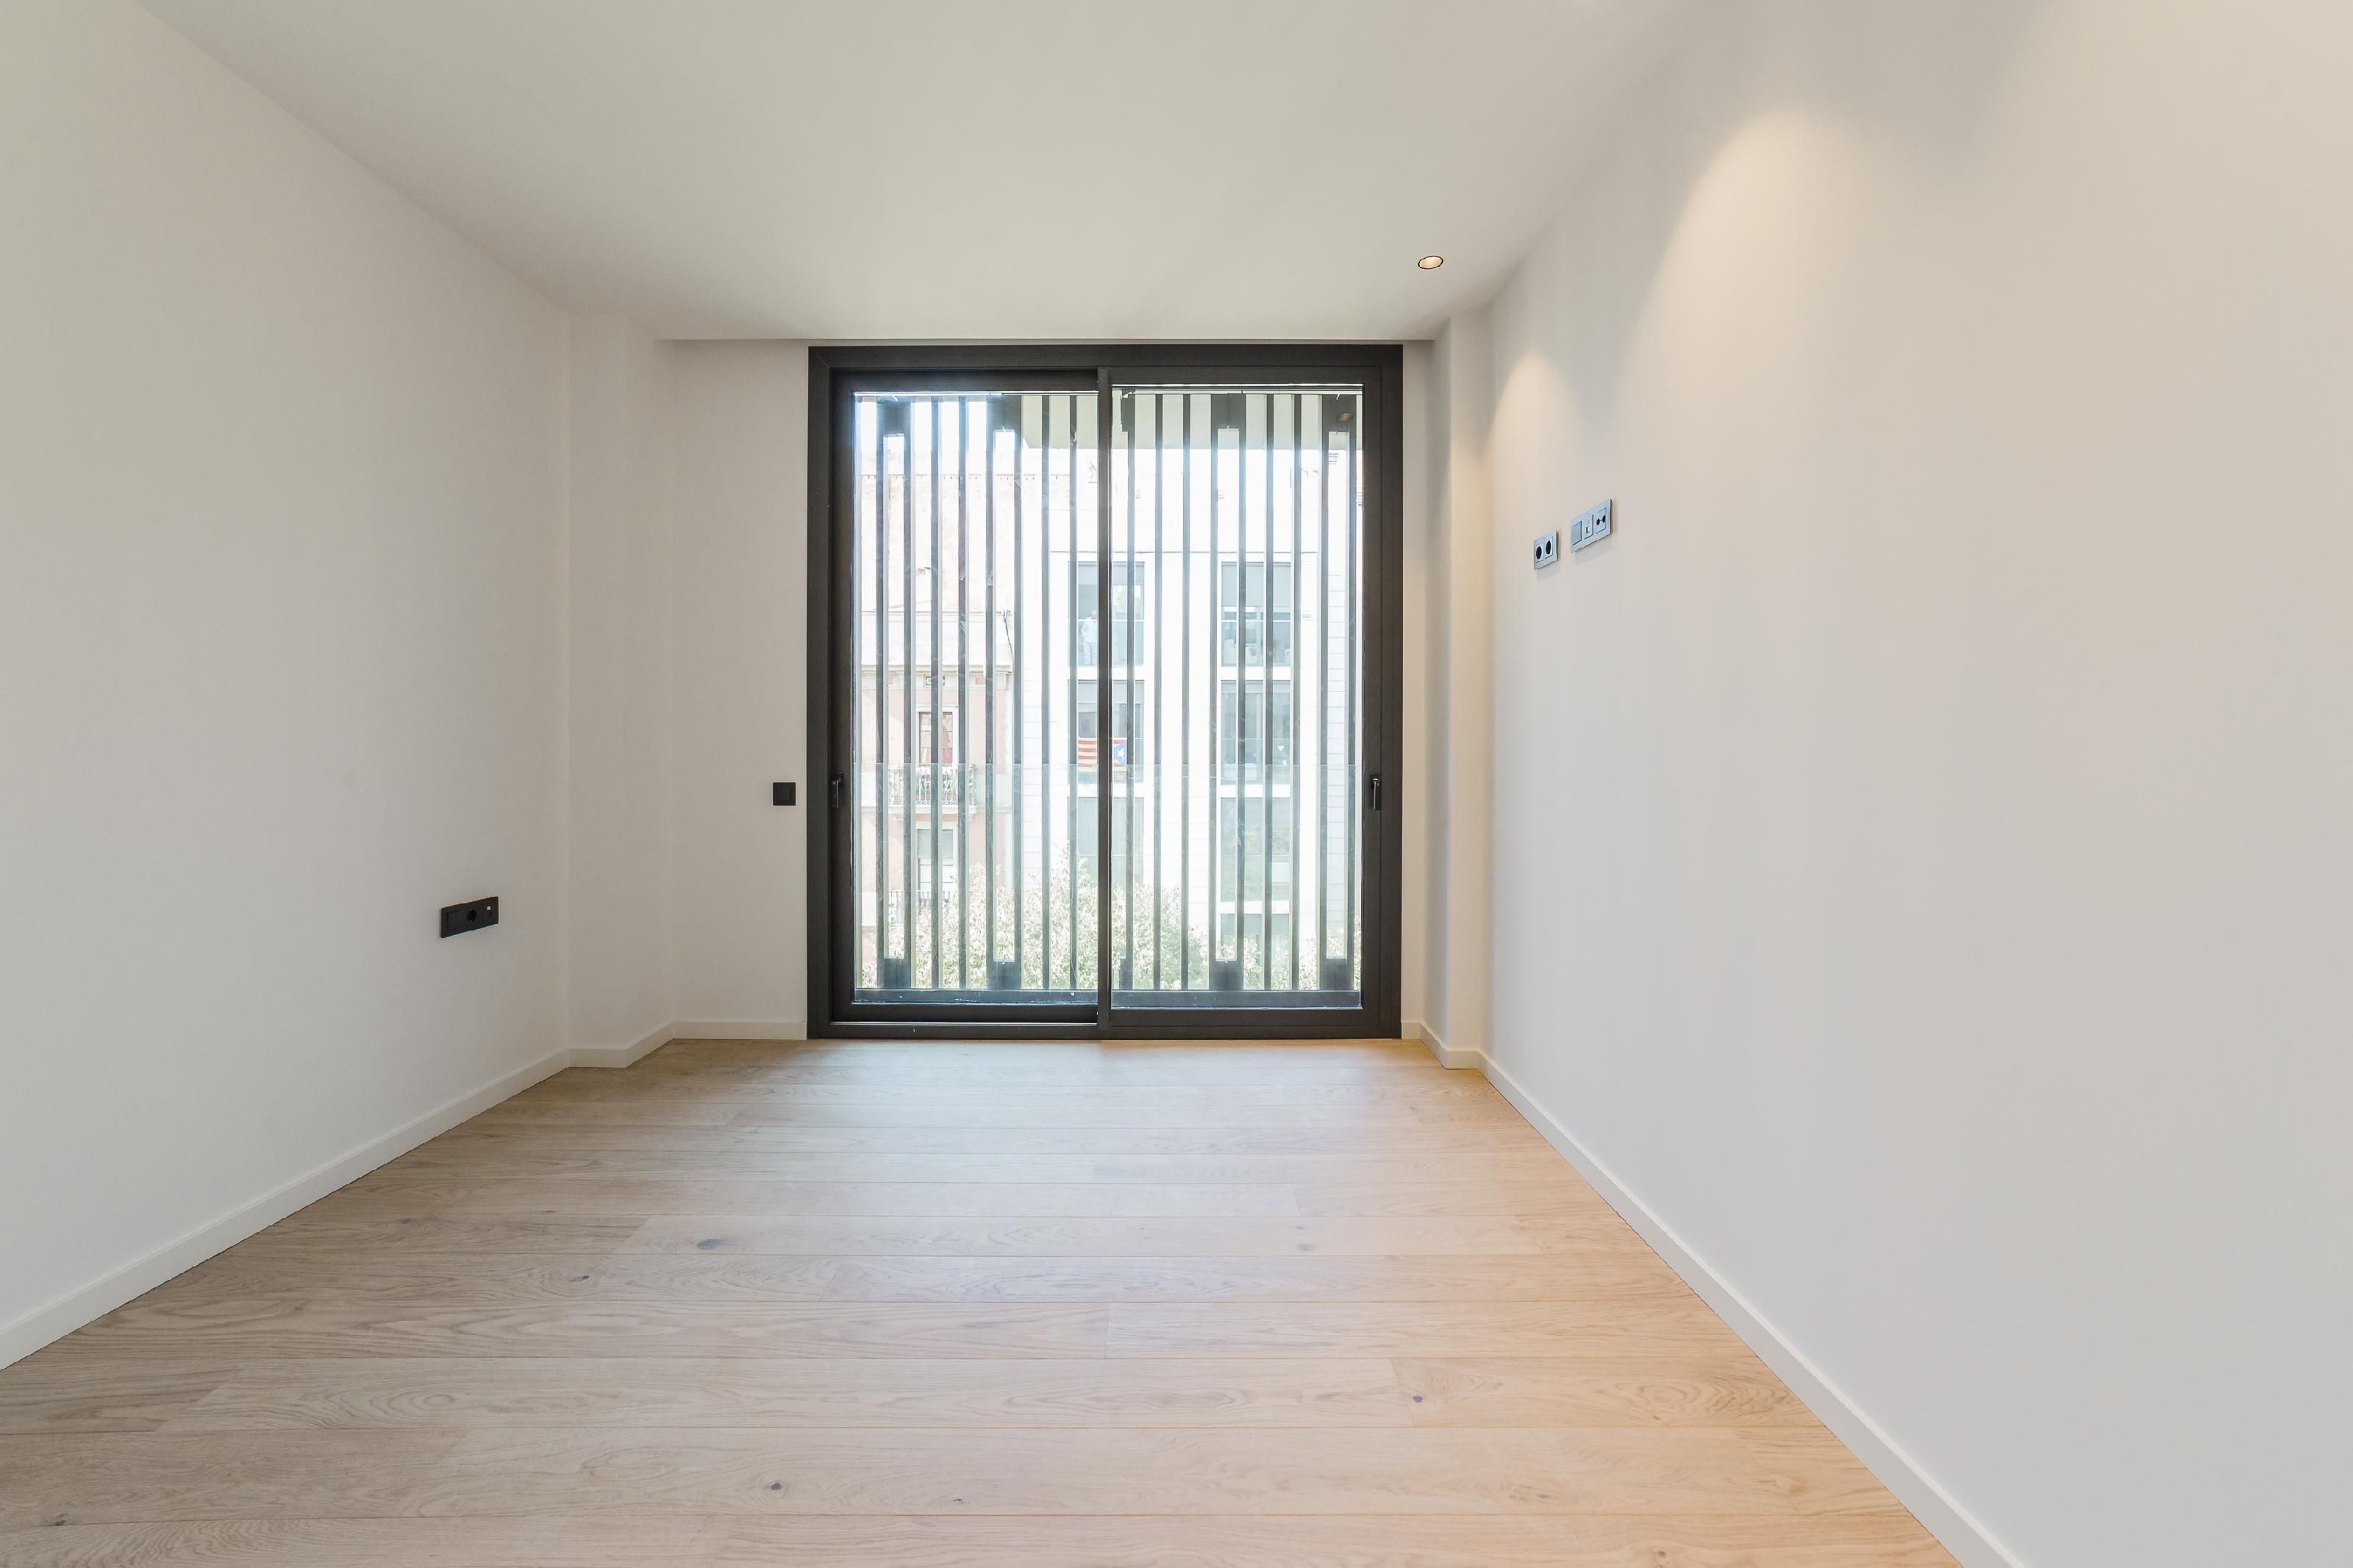 182474 Apartment for sale in Eixample, Old Left Eixample 14